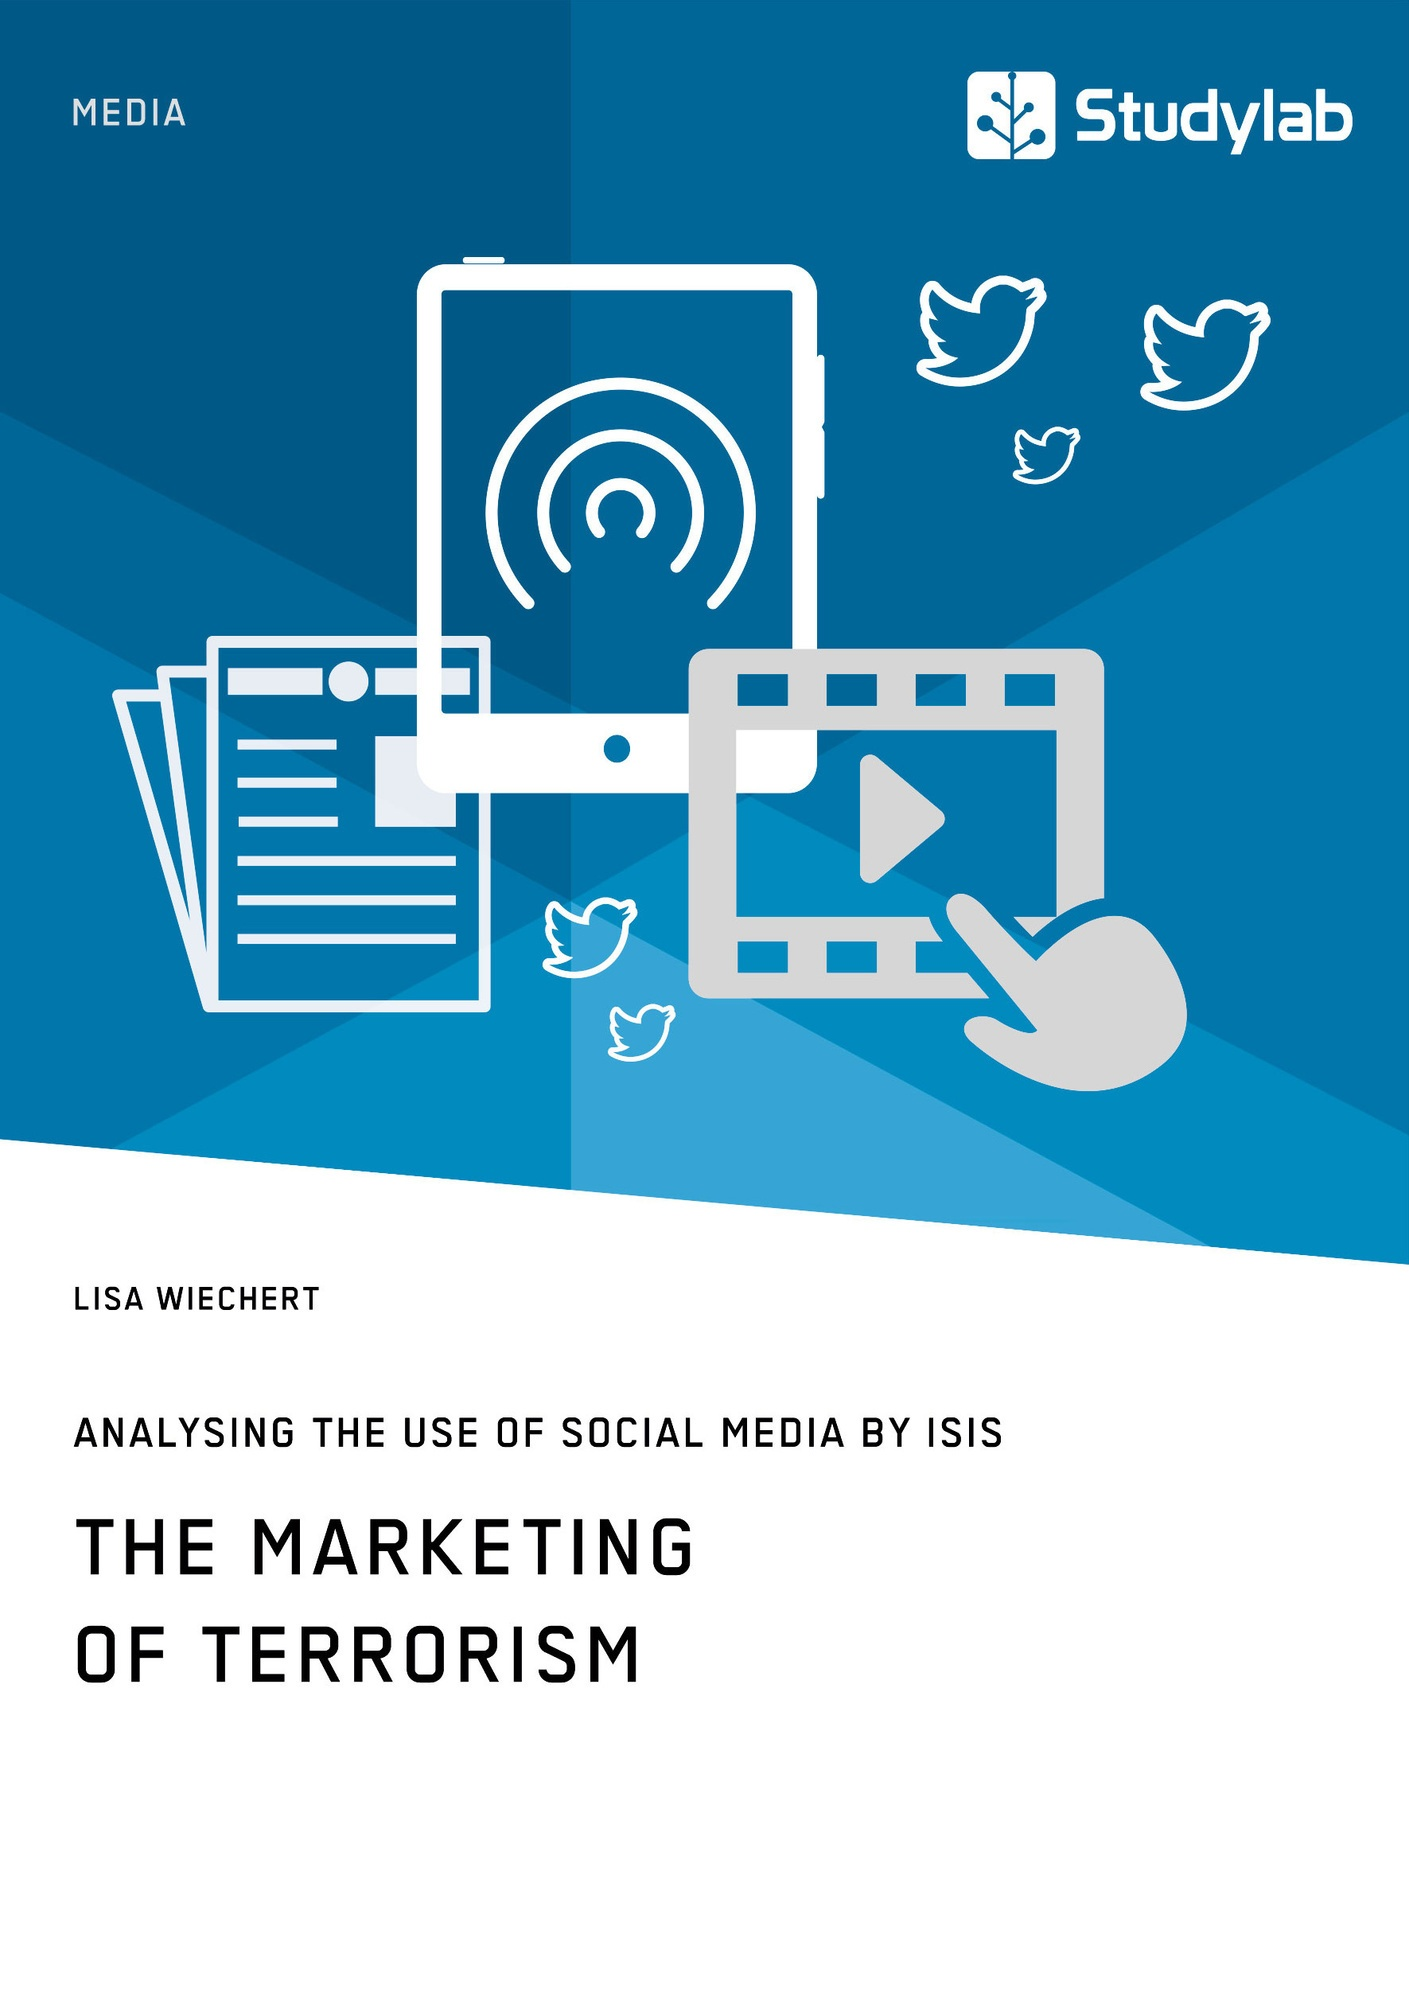 Title: The Marketing of Terrorism. Analysing the Use of Social Media by ISIS